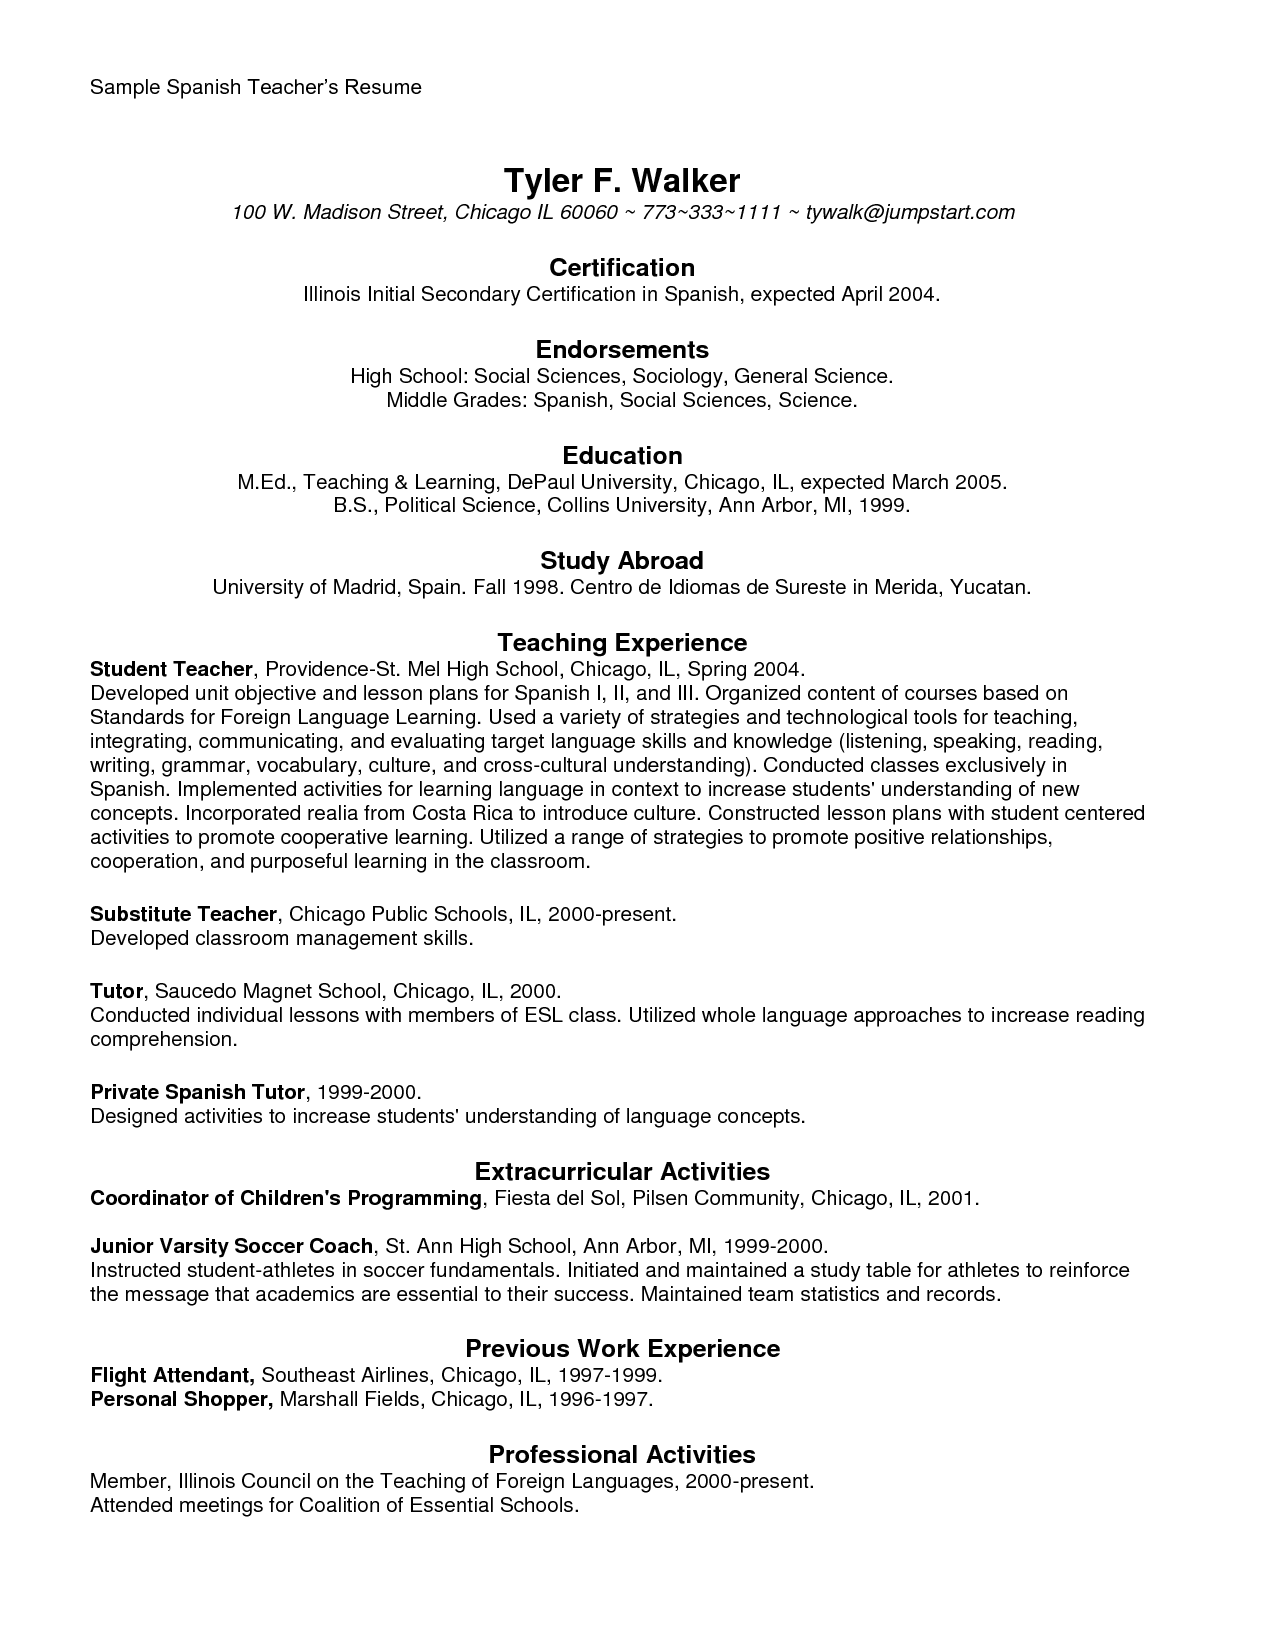 Resume Templates In Spanish ResumeTemplates